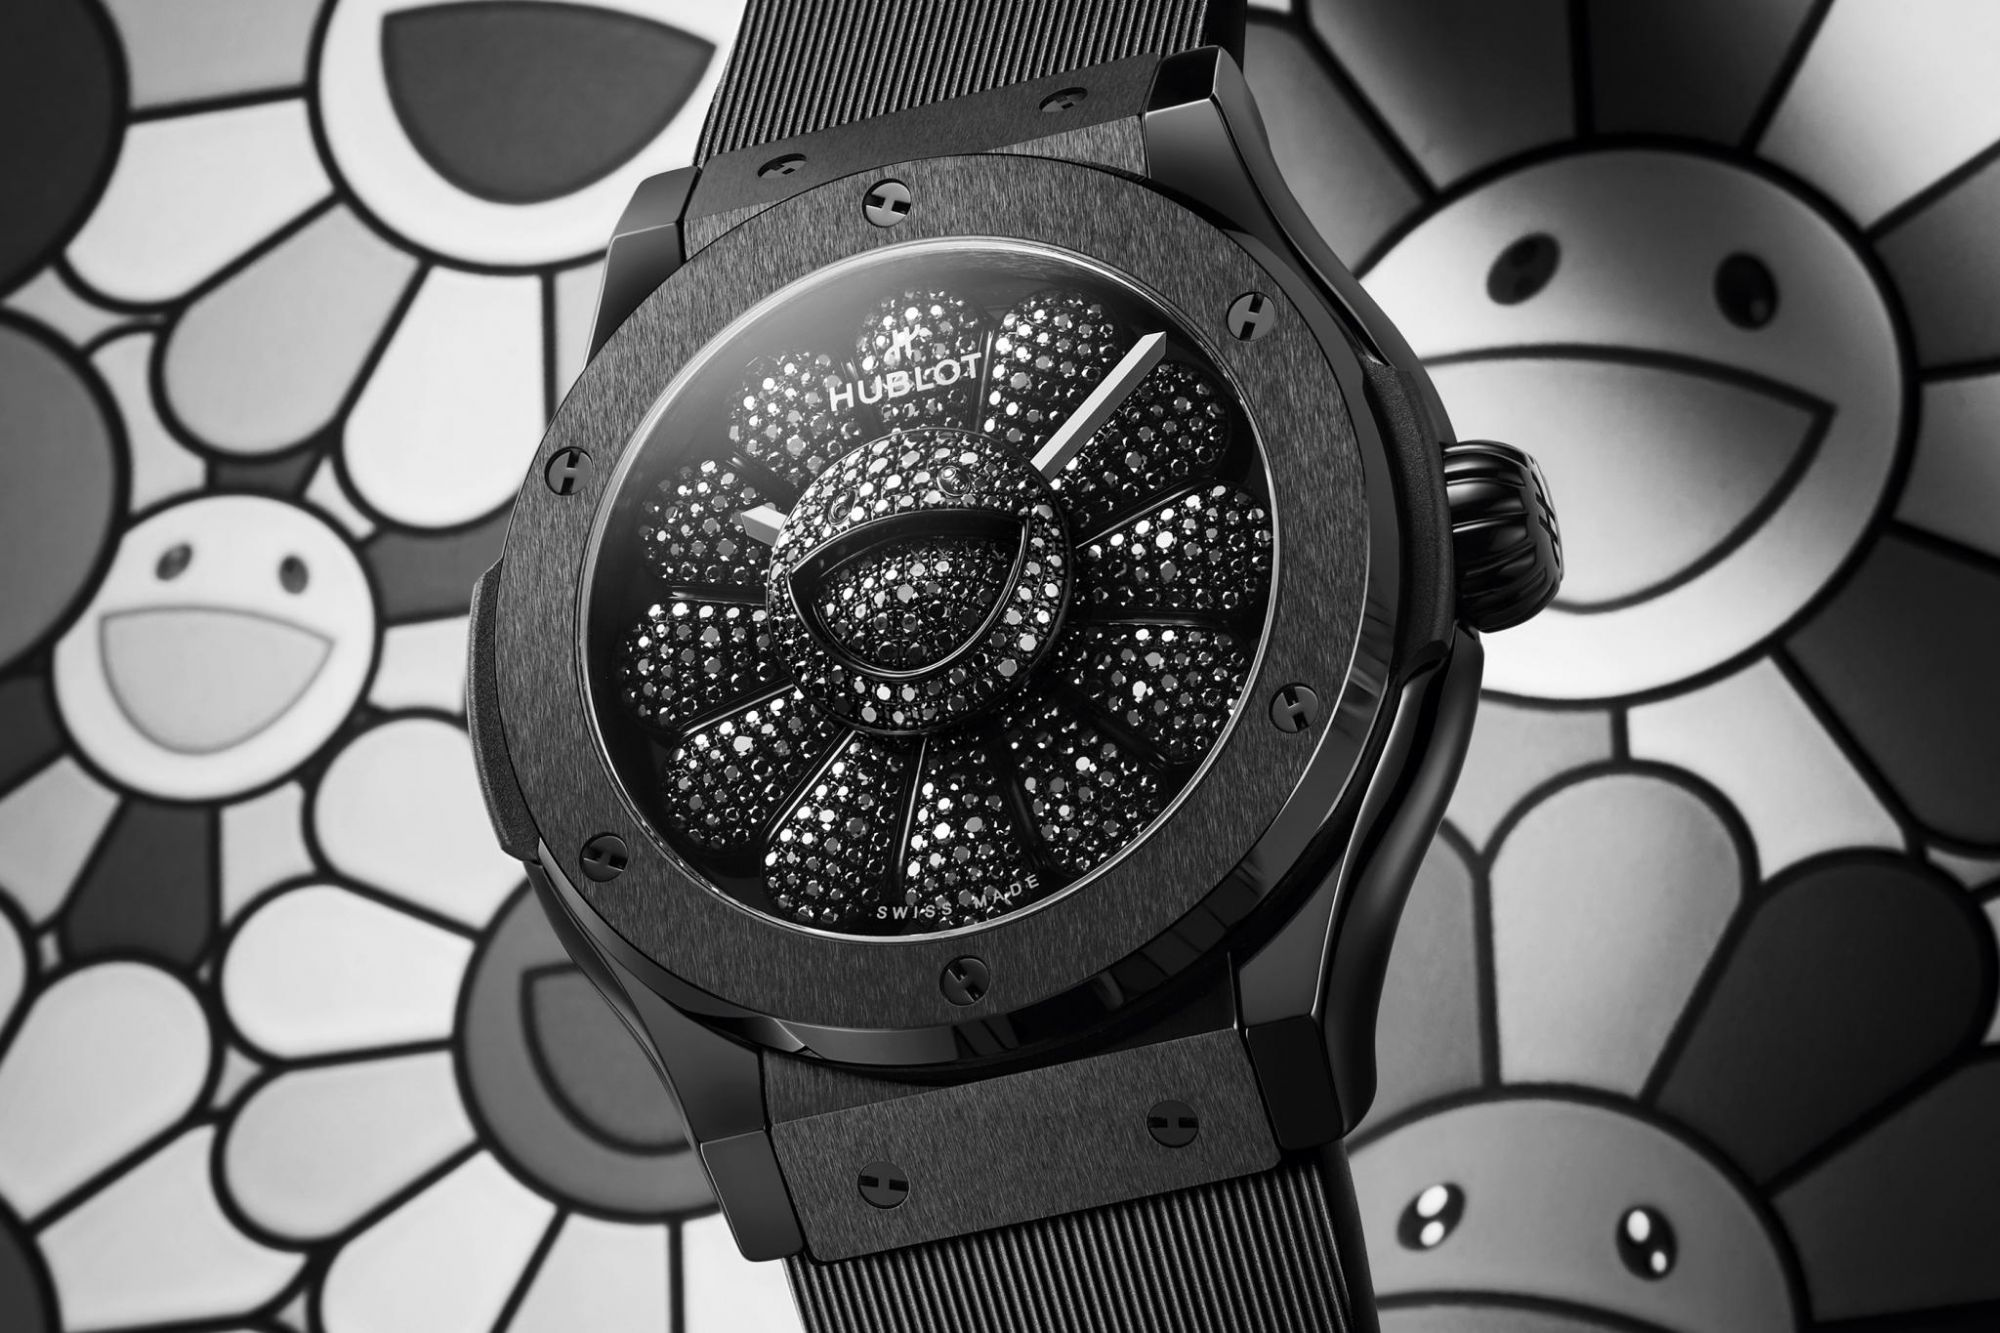 Takashi Murakami & Hublot Join Forces For A Whimsical Black Diamond Timepiece